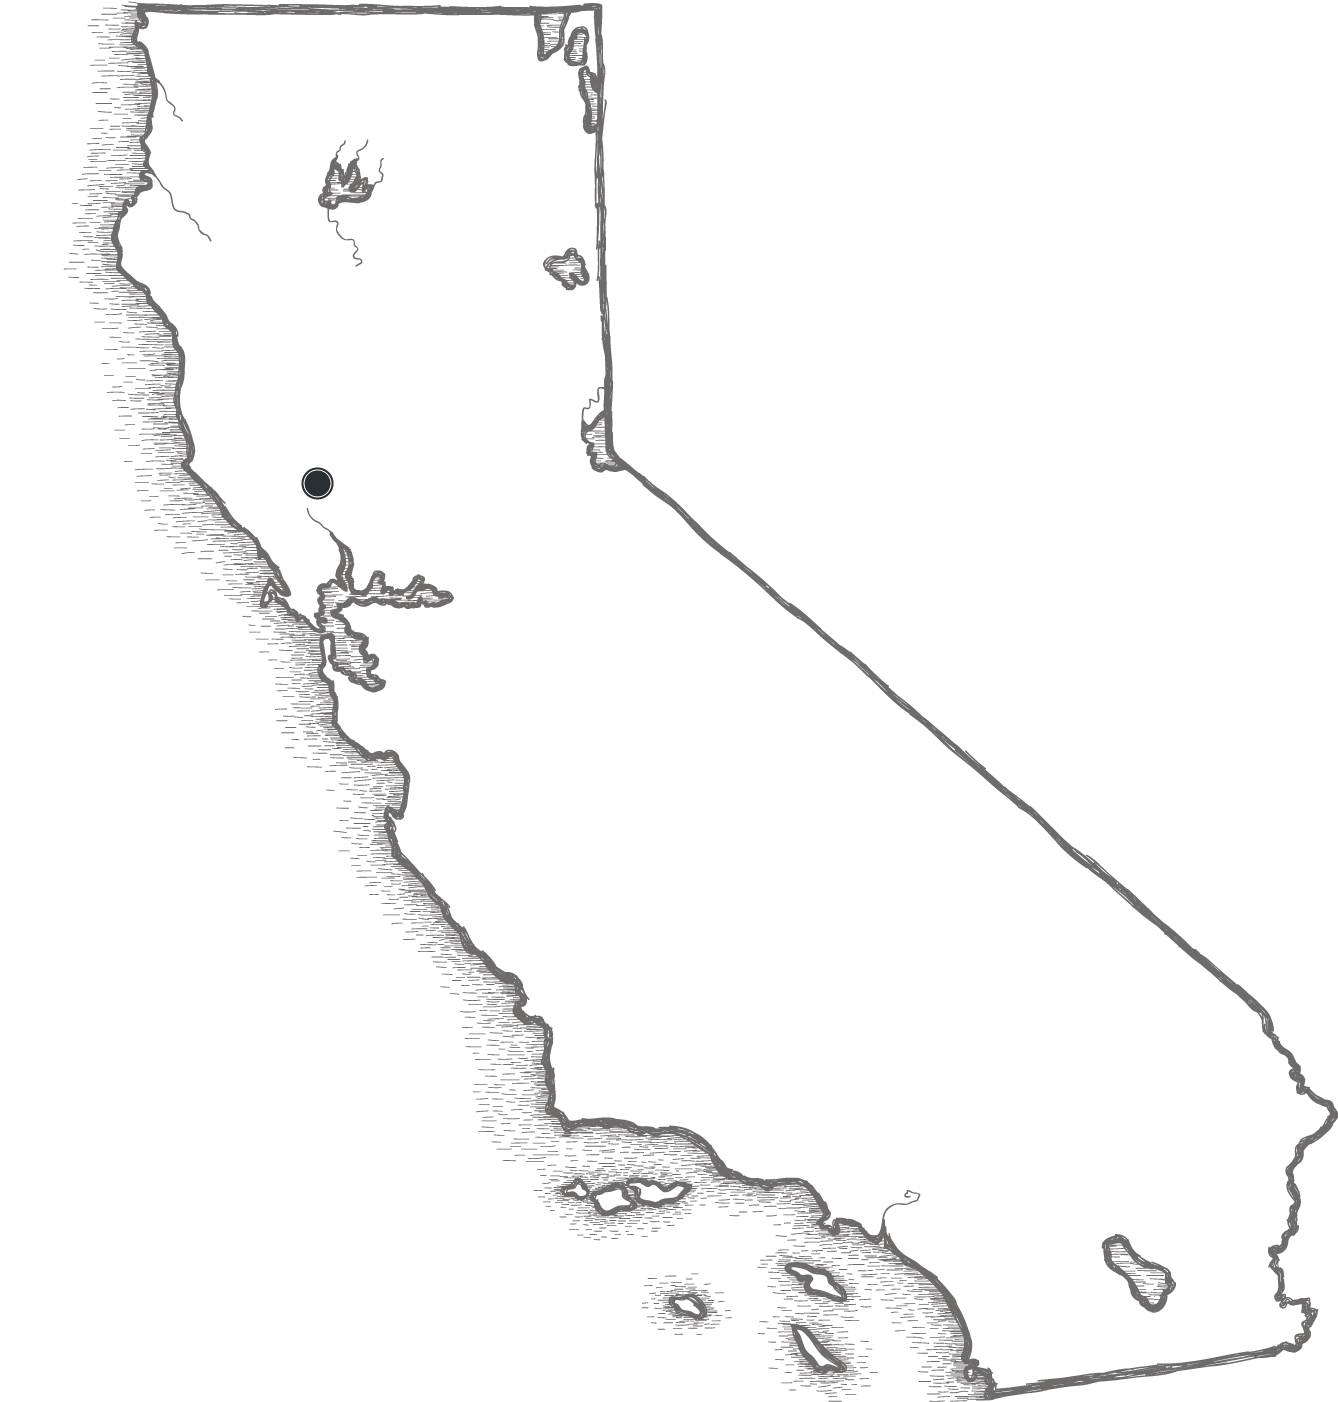 Artistic sketch of the state of California - St. Helena highlighted